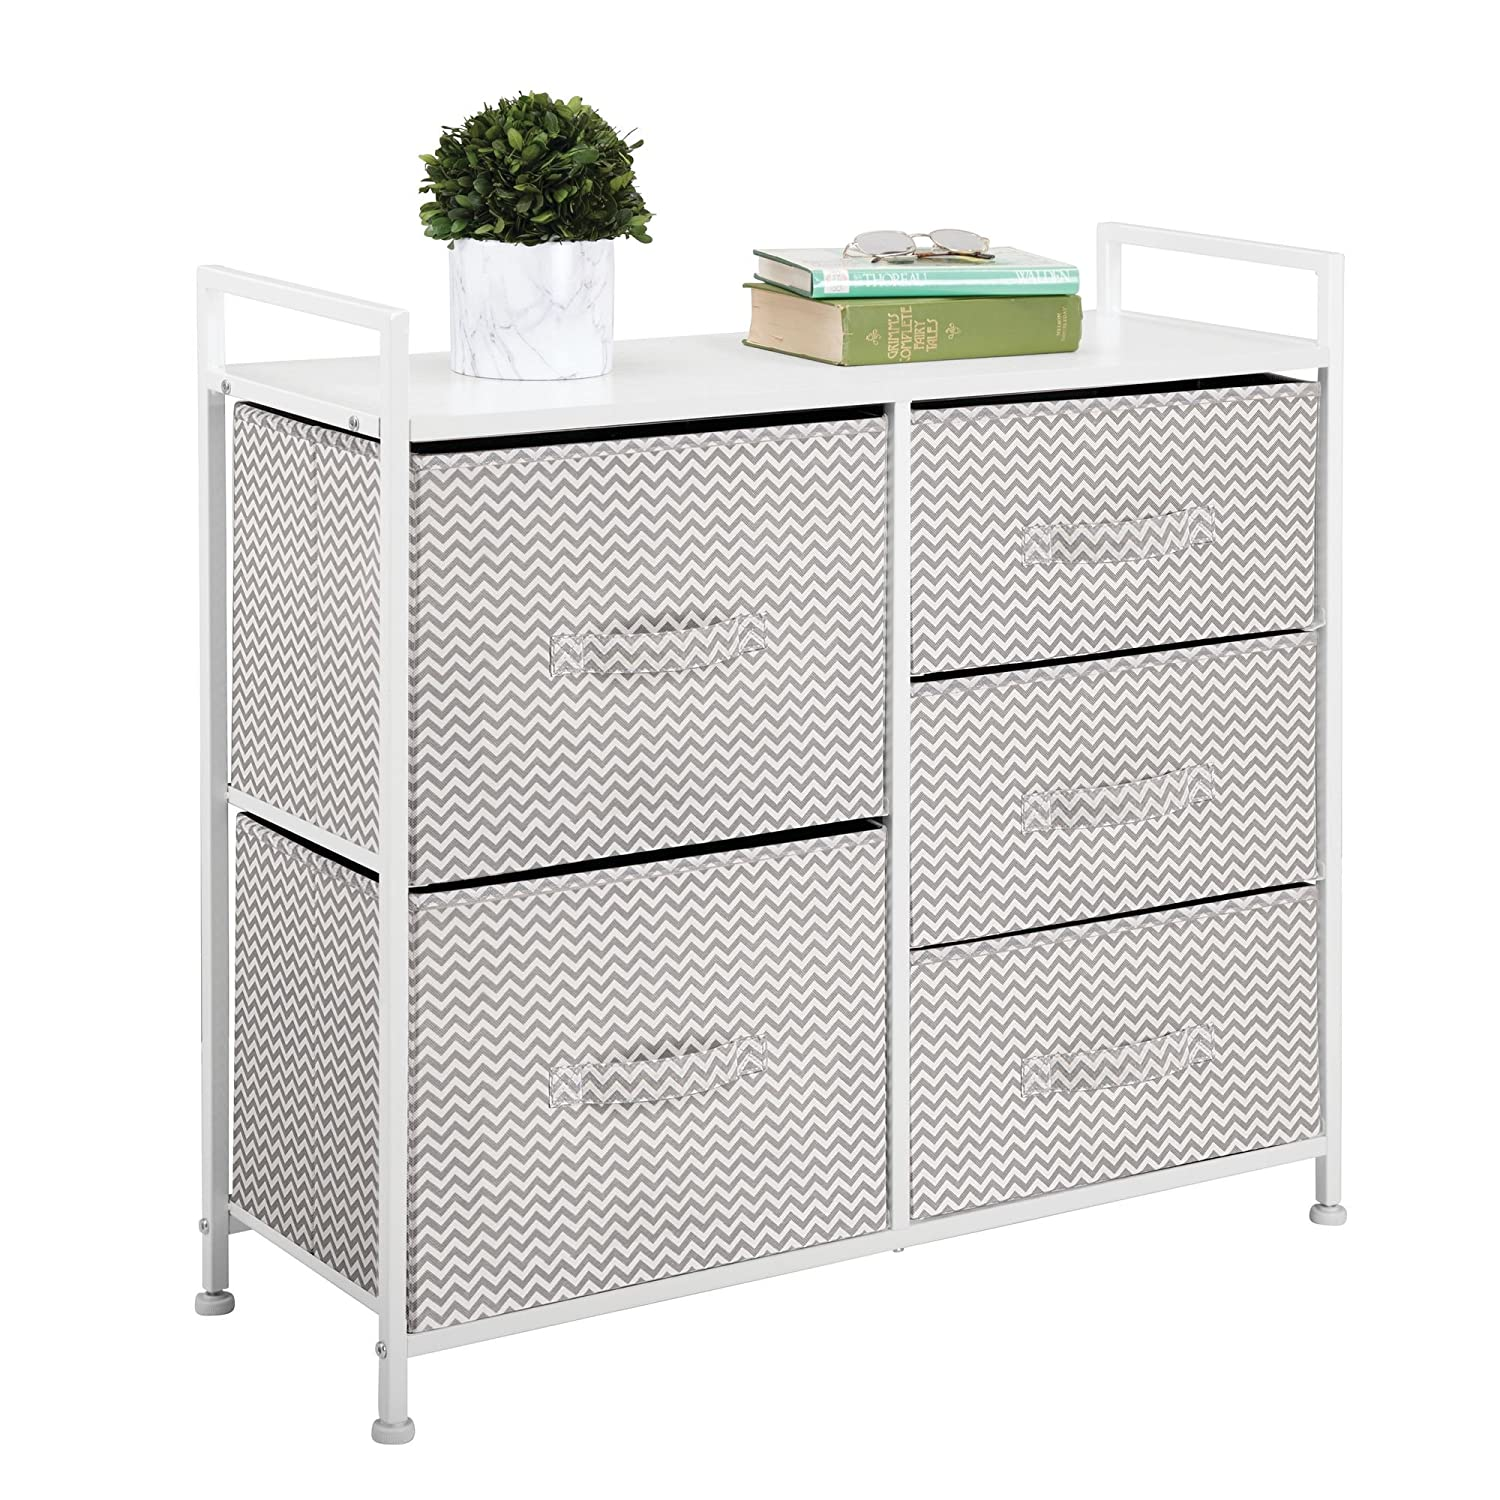 mDesign Vertical Dresser Storage Tower - Sturdy Steel Frame, Wood Top, Easy Pull Fabric Bins - Organizer Unit for Bedroom, Hallway, Entryway, Closets - Chevron Print - 3 Drawers, Mint/White MetroDecor